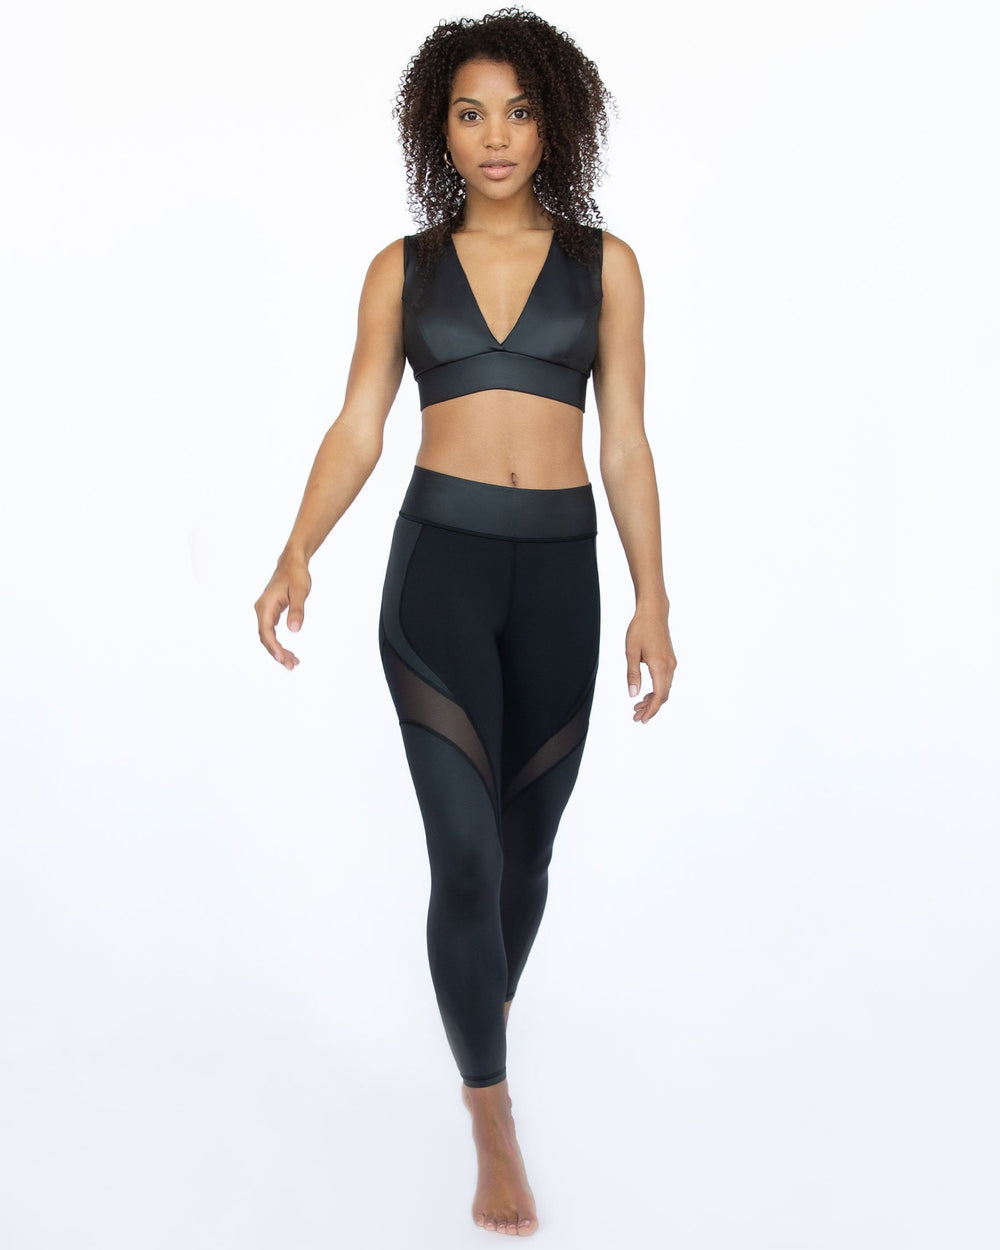 Glow Gloss Legging - Black